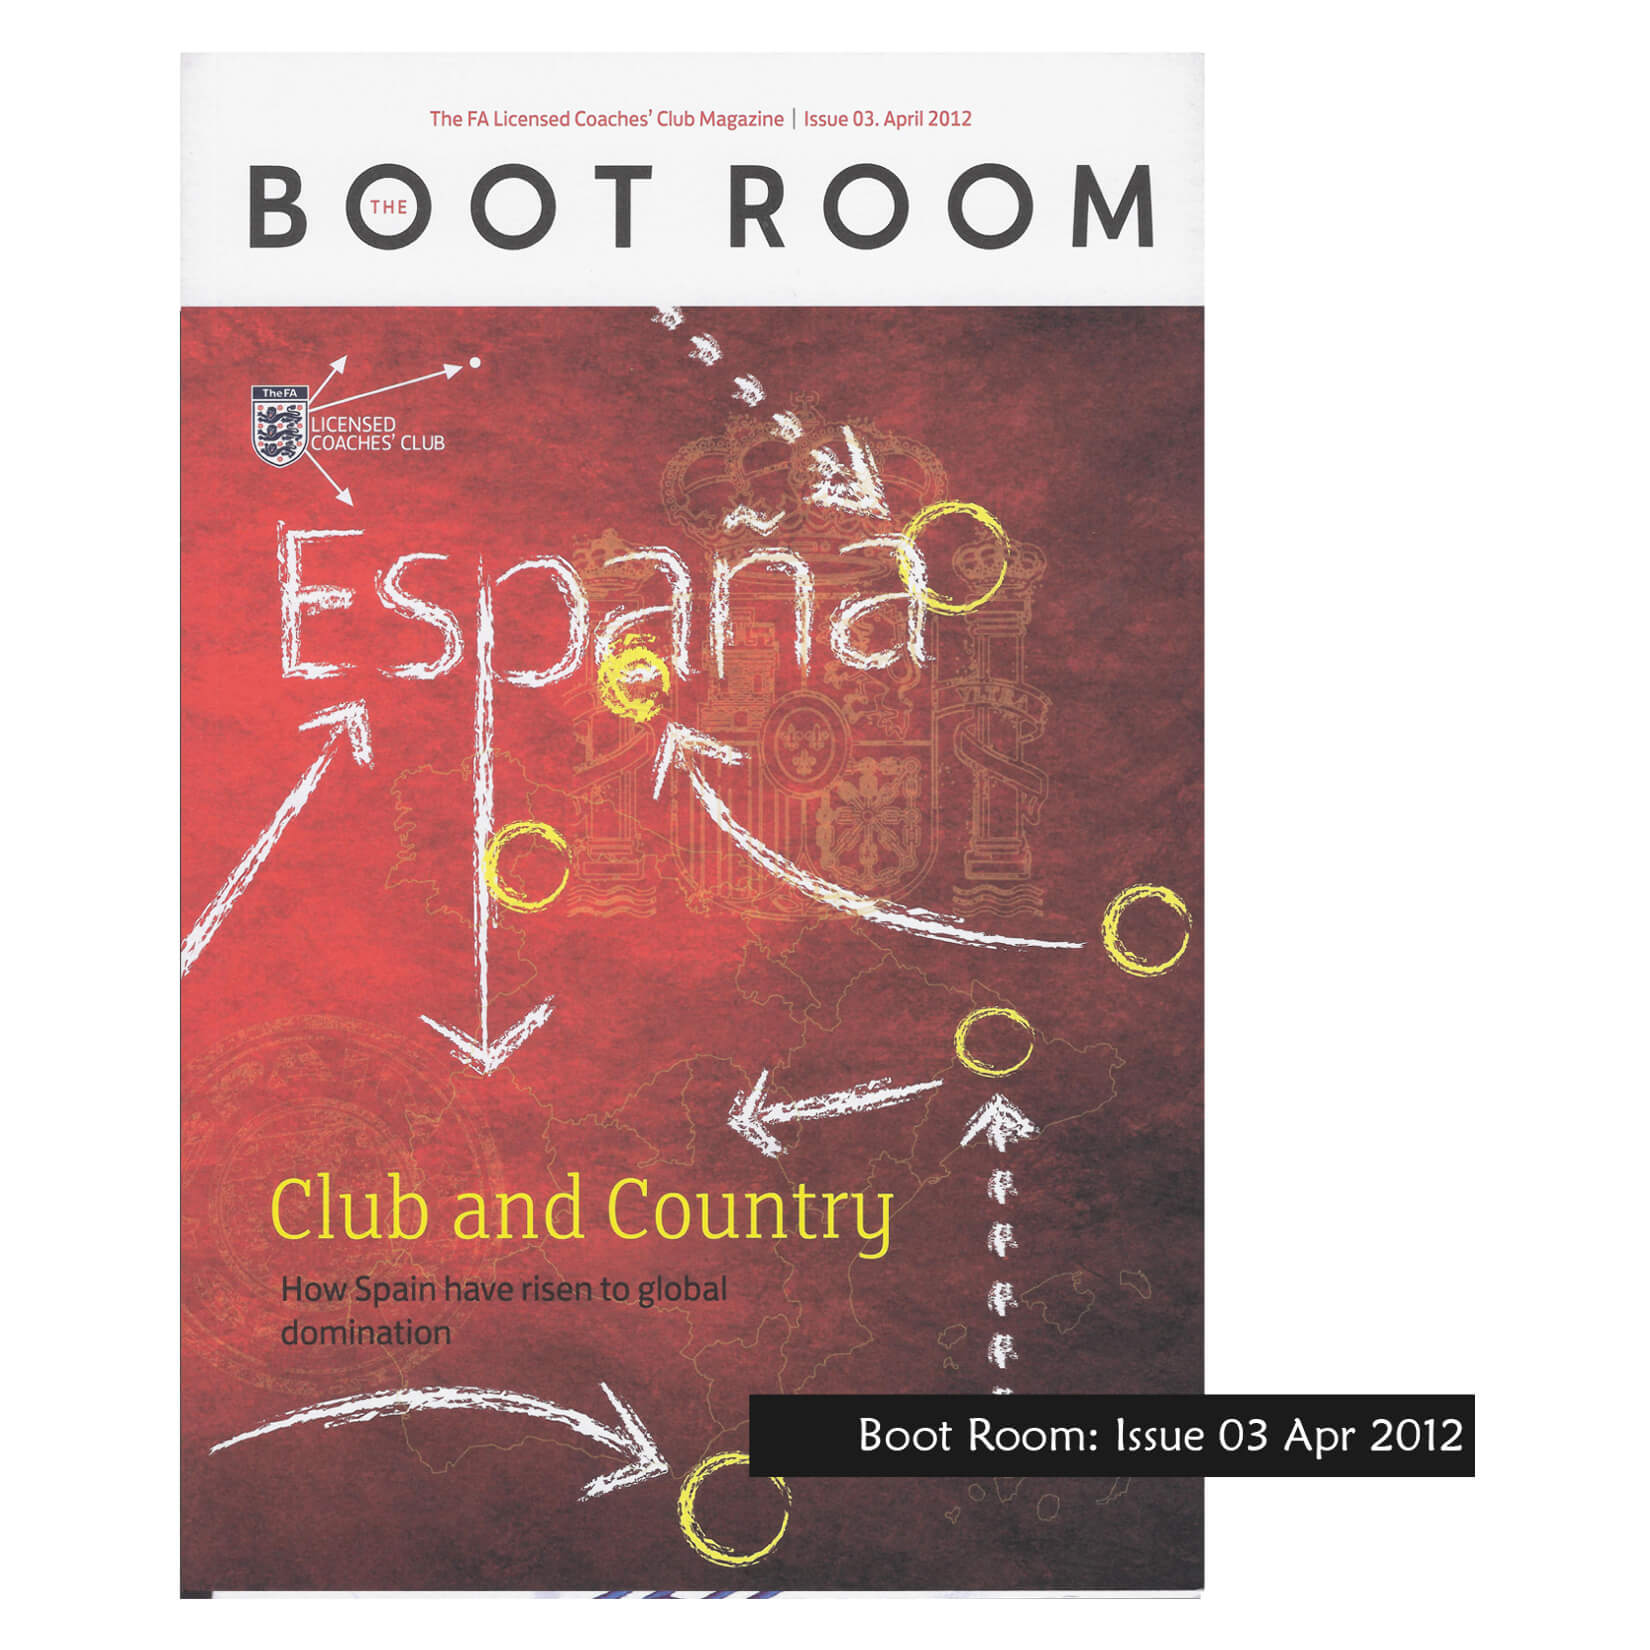 FA Boot Room Issue 03 - Magazine Misc-1-2078-4430